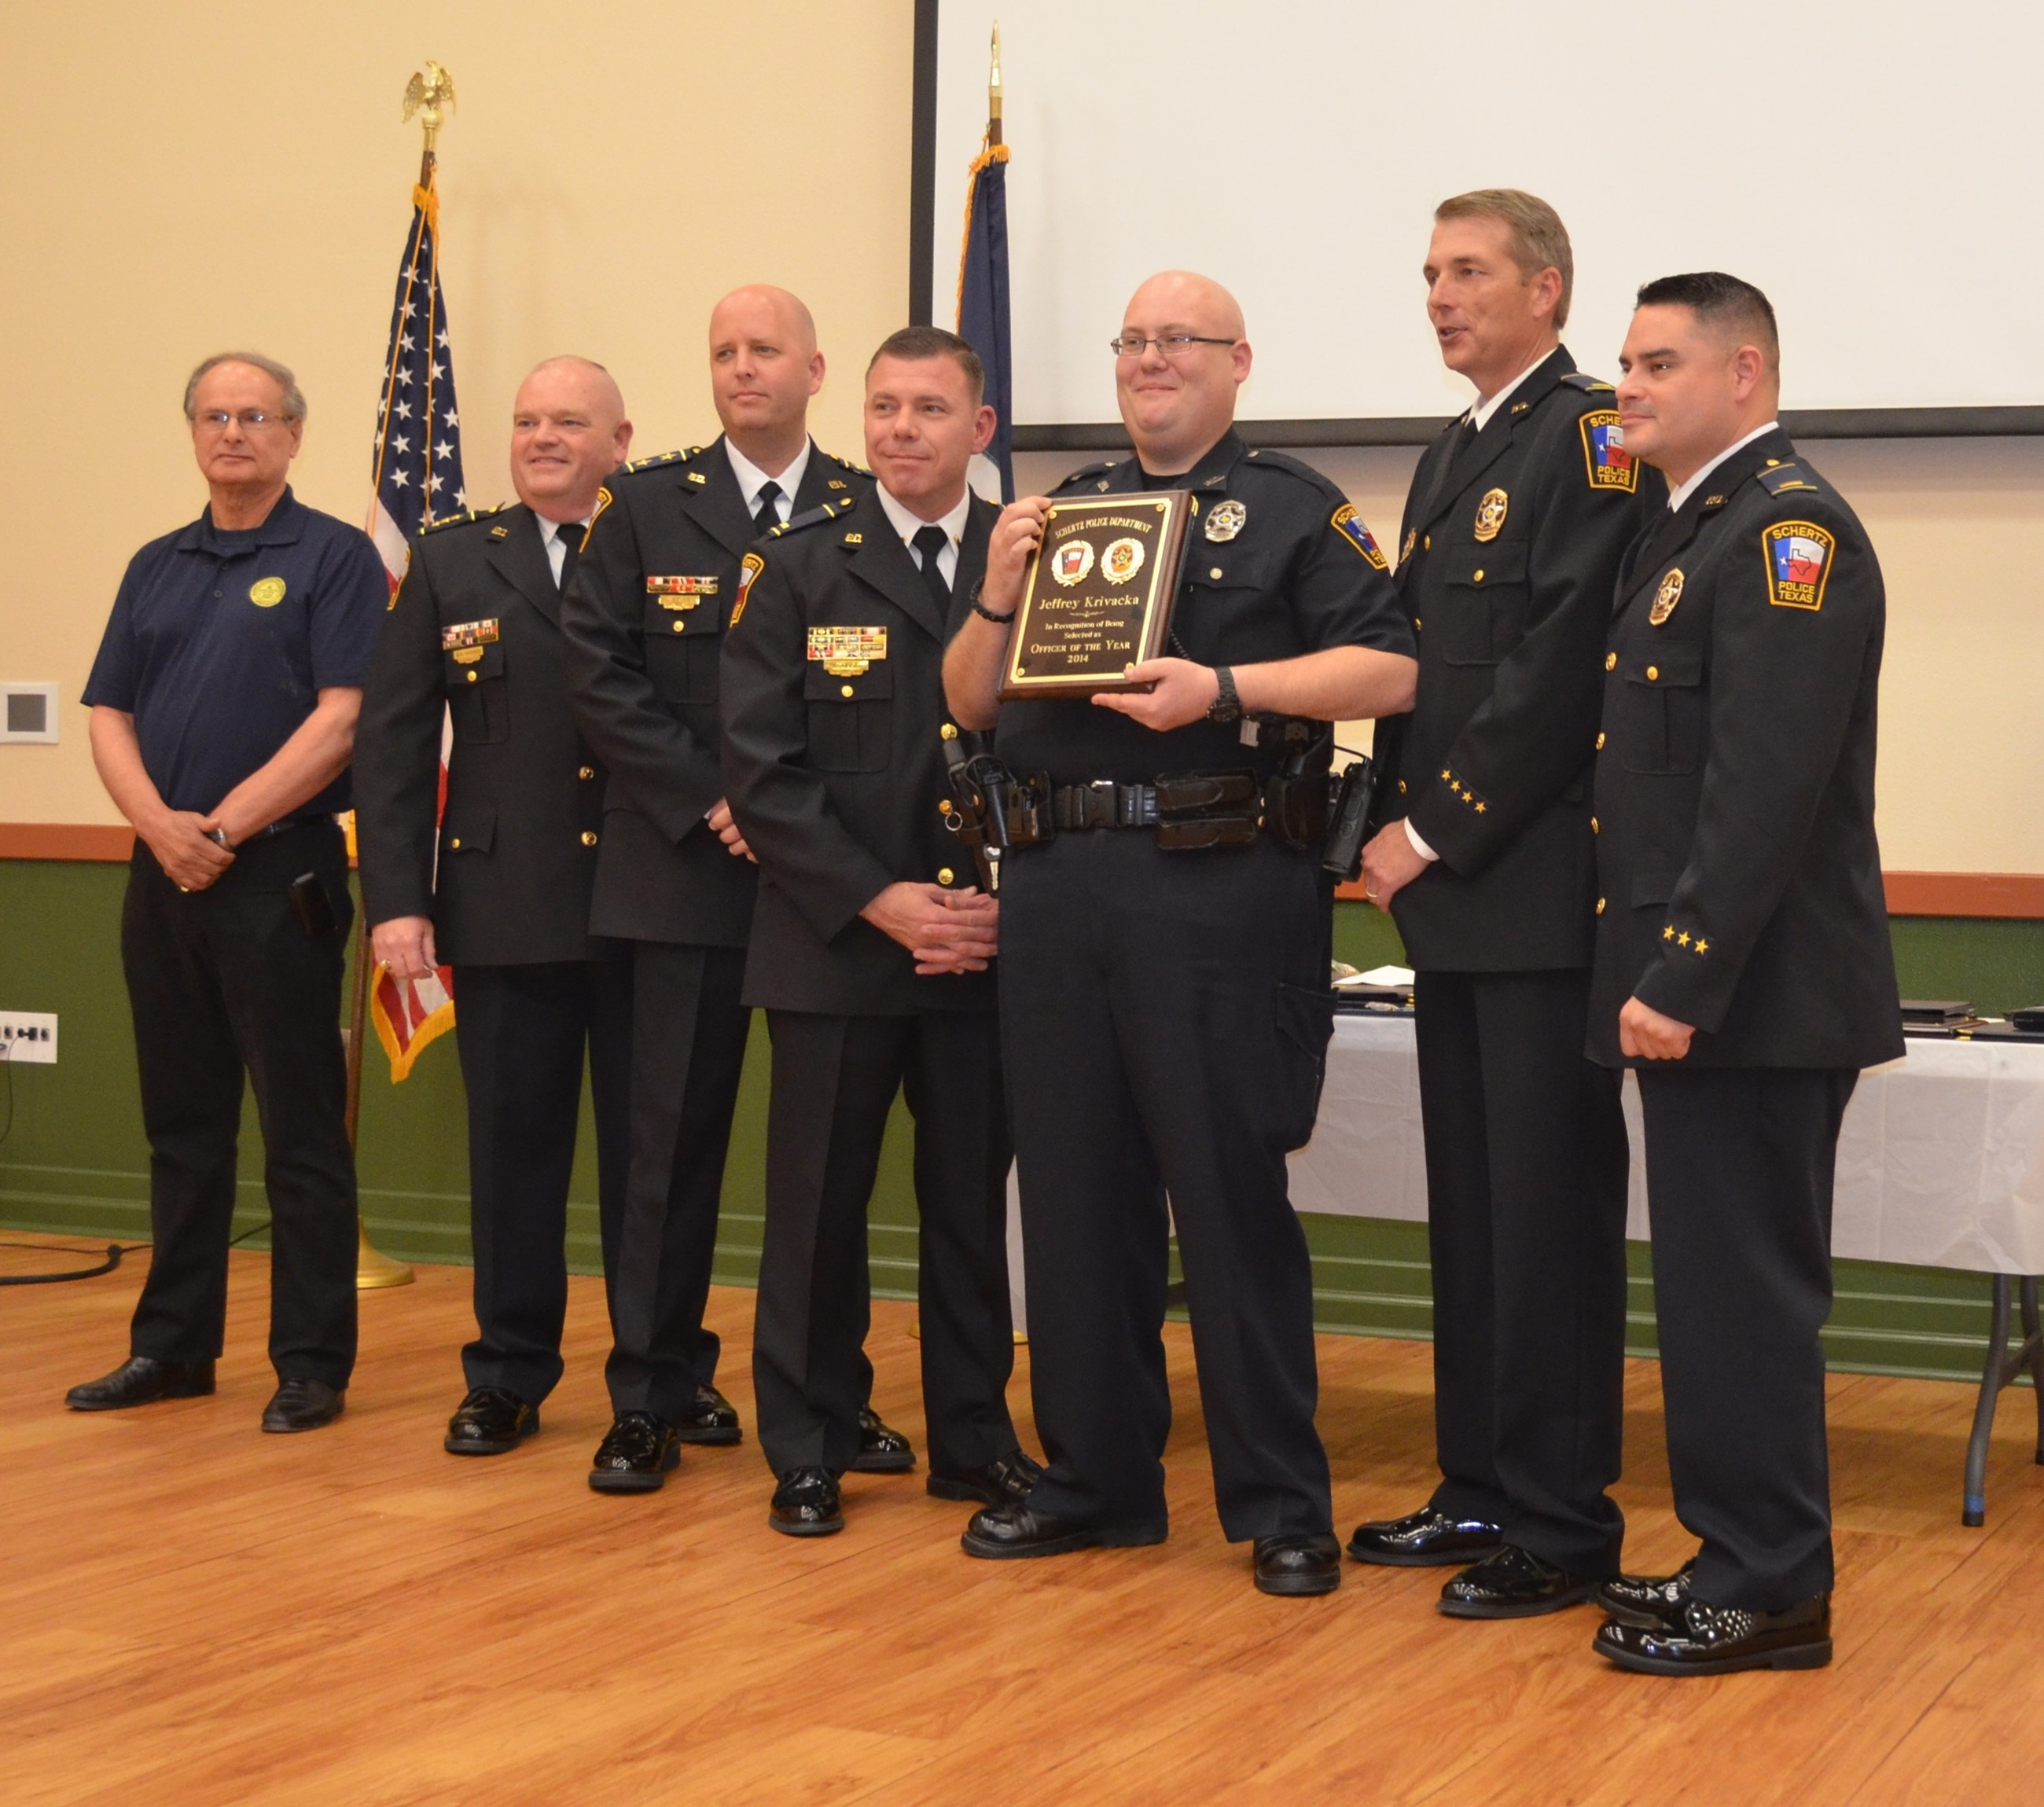 2014 Officer of the Year Awarded